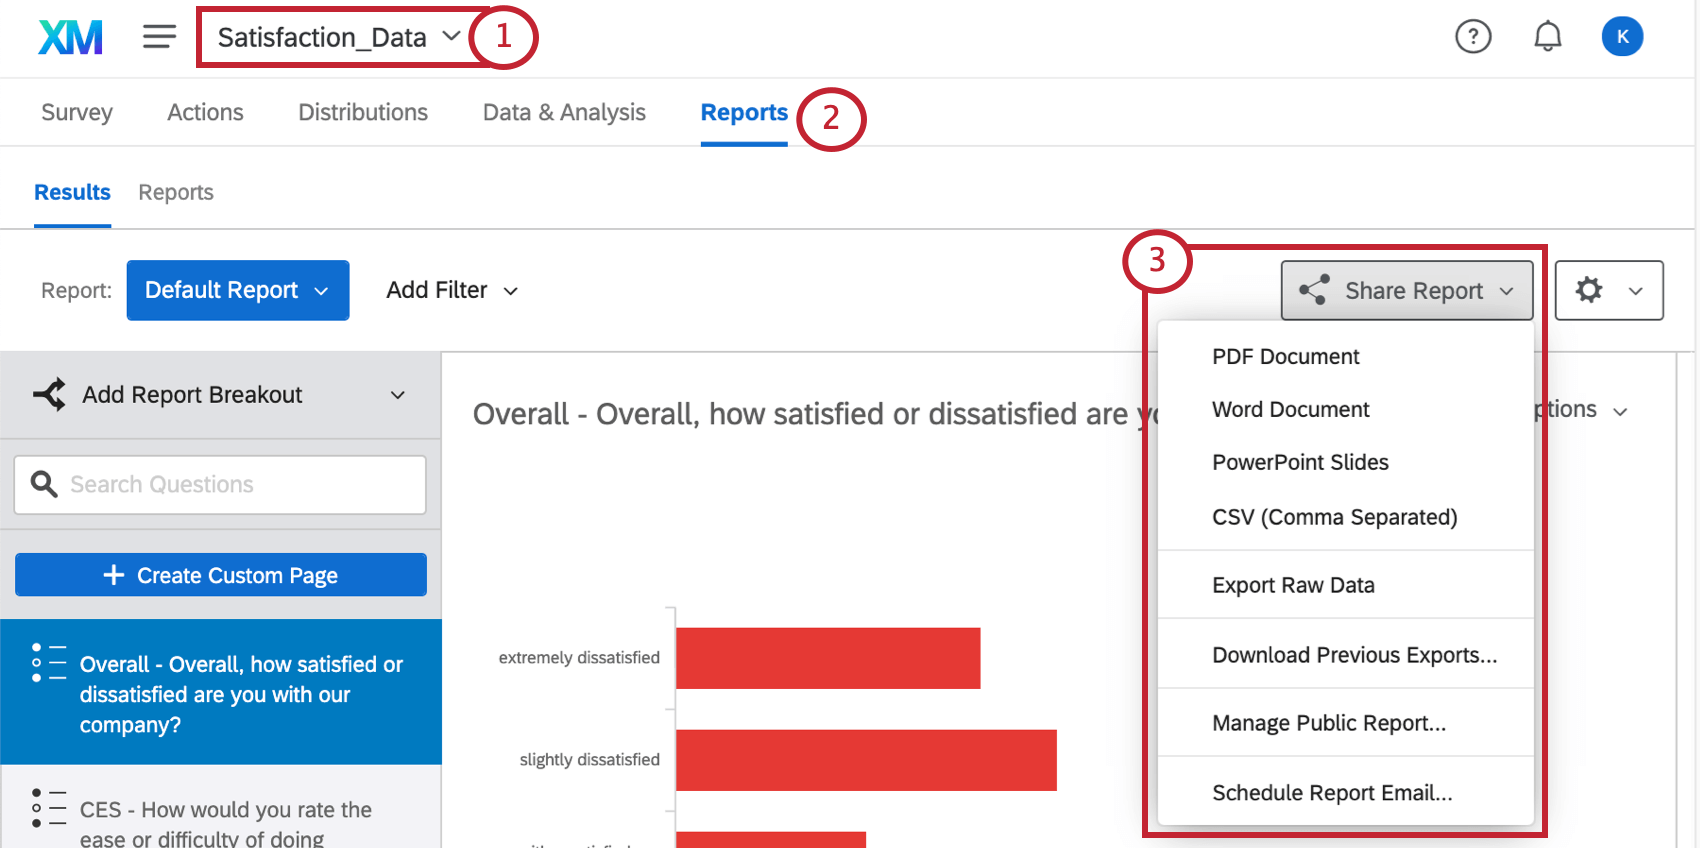 The reports tab is open. The topmost name of the survey lets you navigate between surveys. Being inside Reports brings you immediately to the results section, where theres a share button on the right under which is a manage public report option